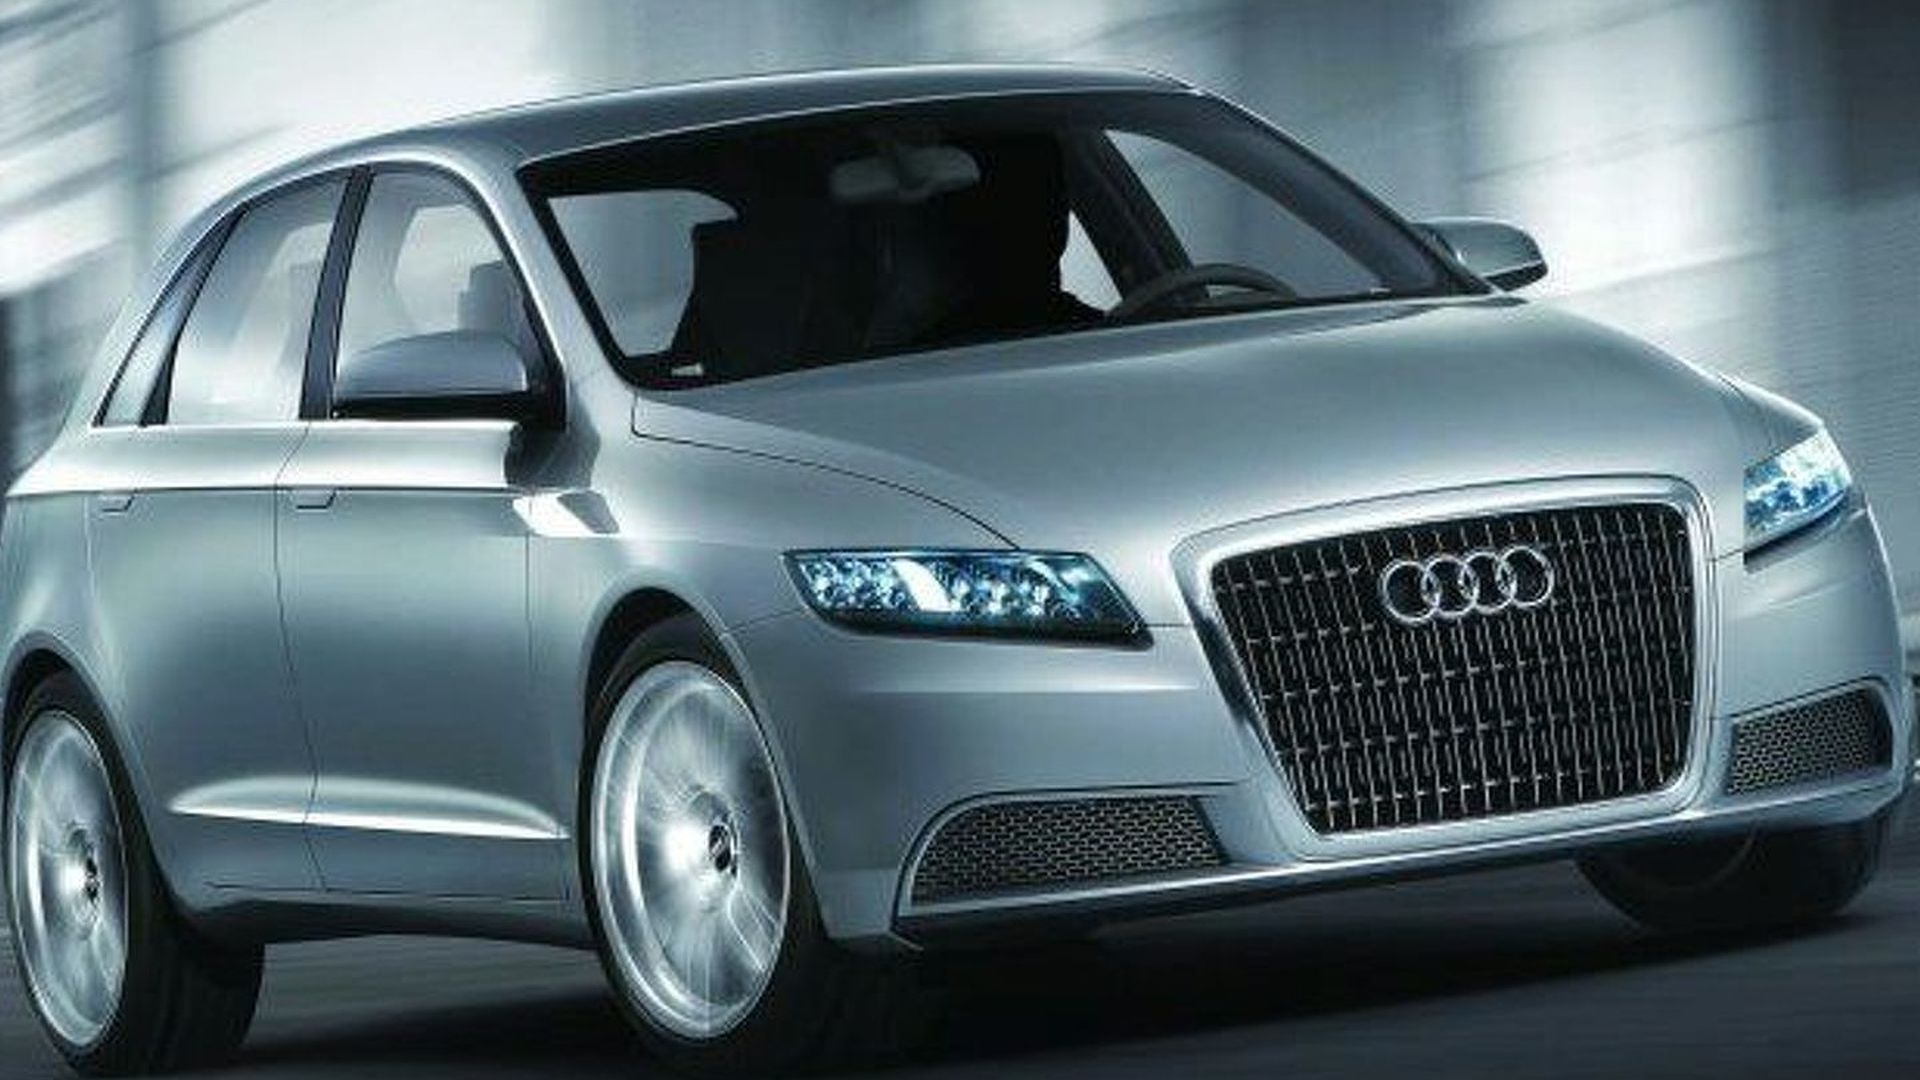 Audi A3 MPV confirmed for production, concept arriving in Frankfurt next month - report